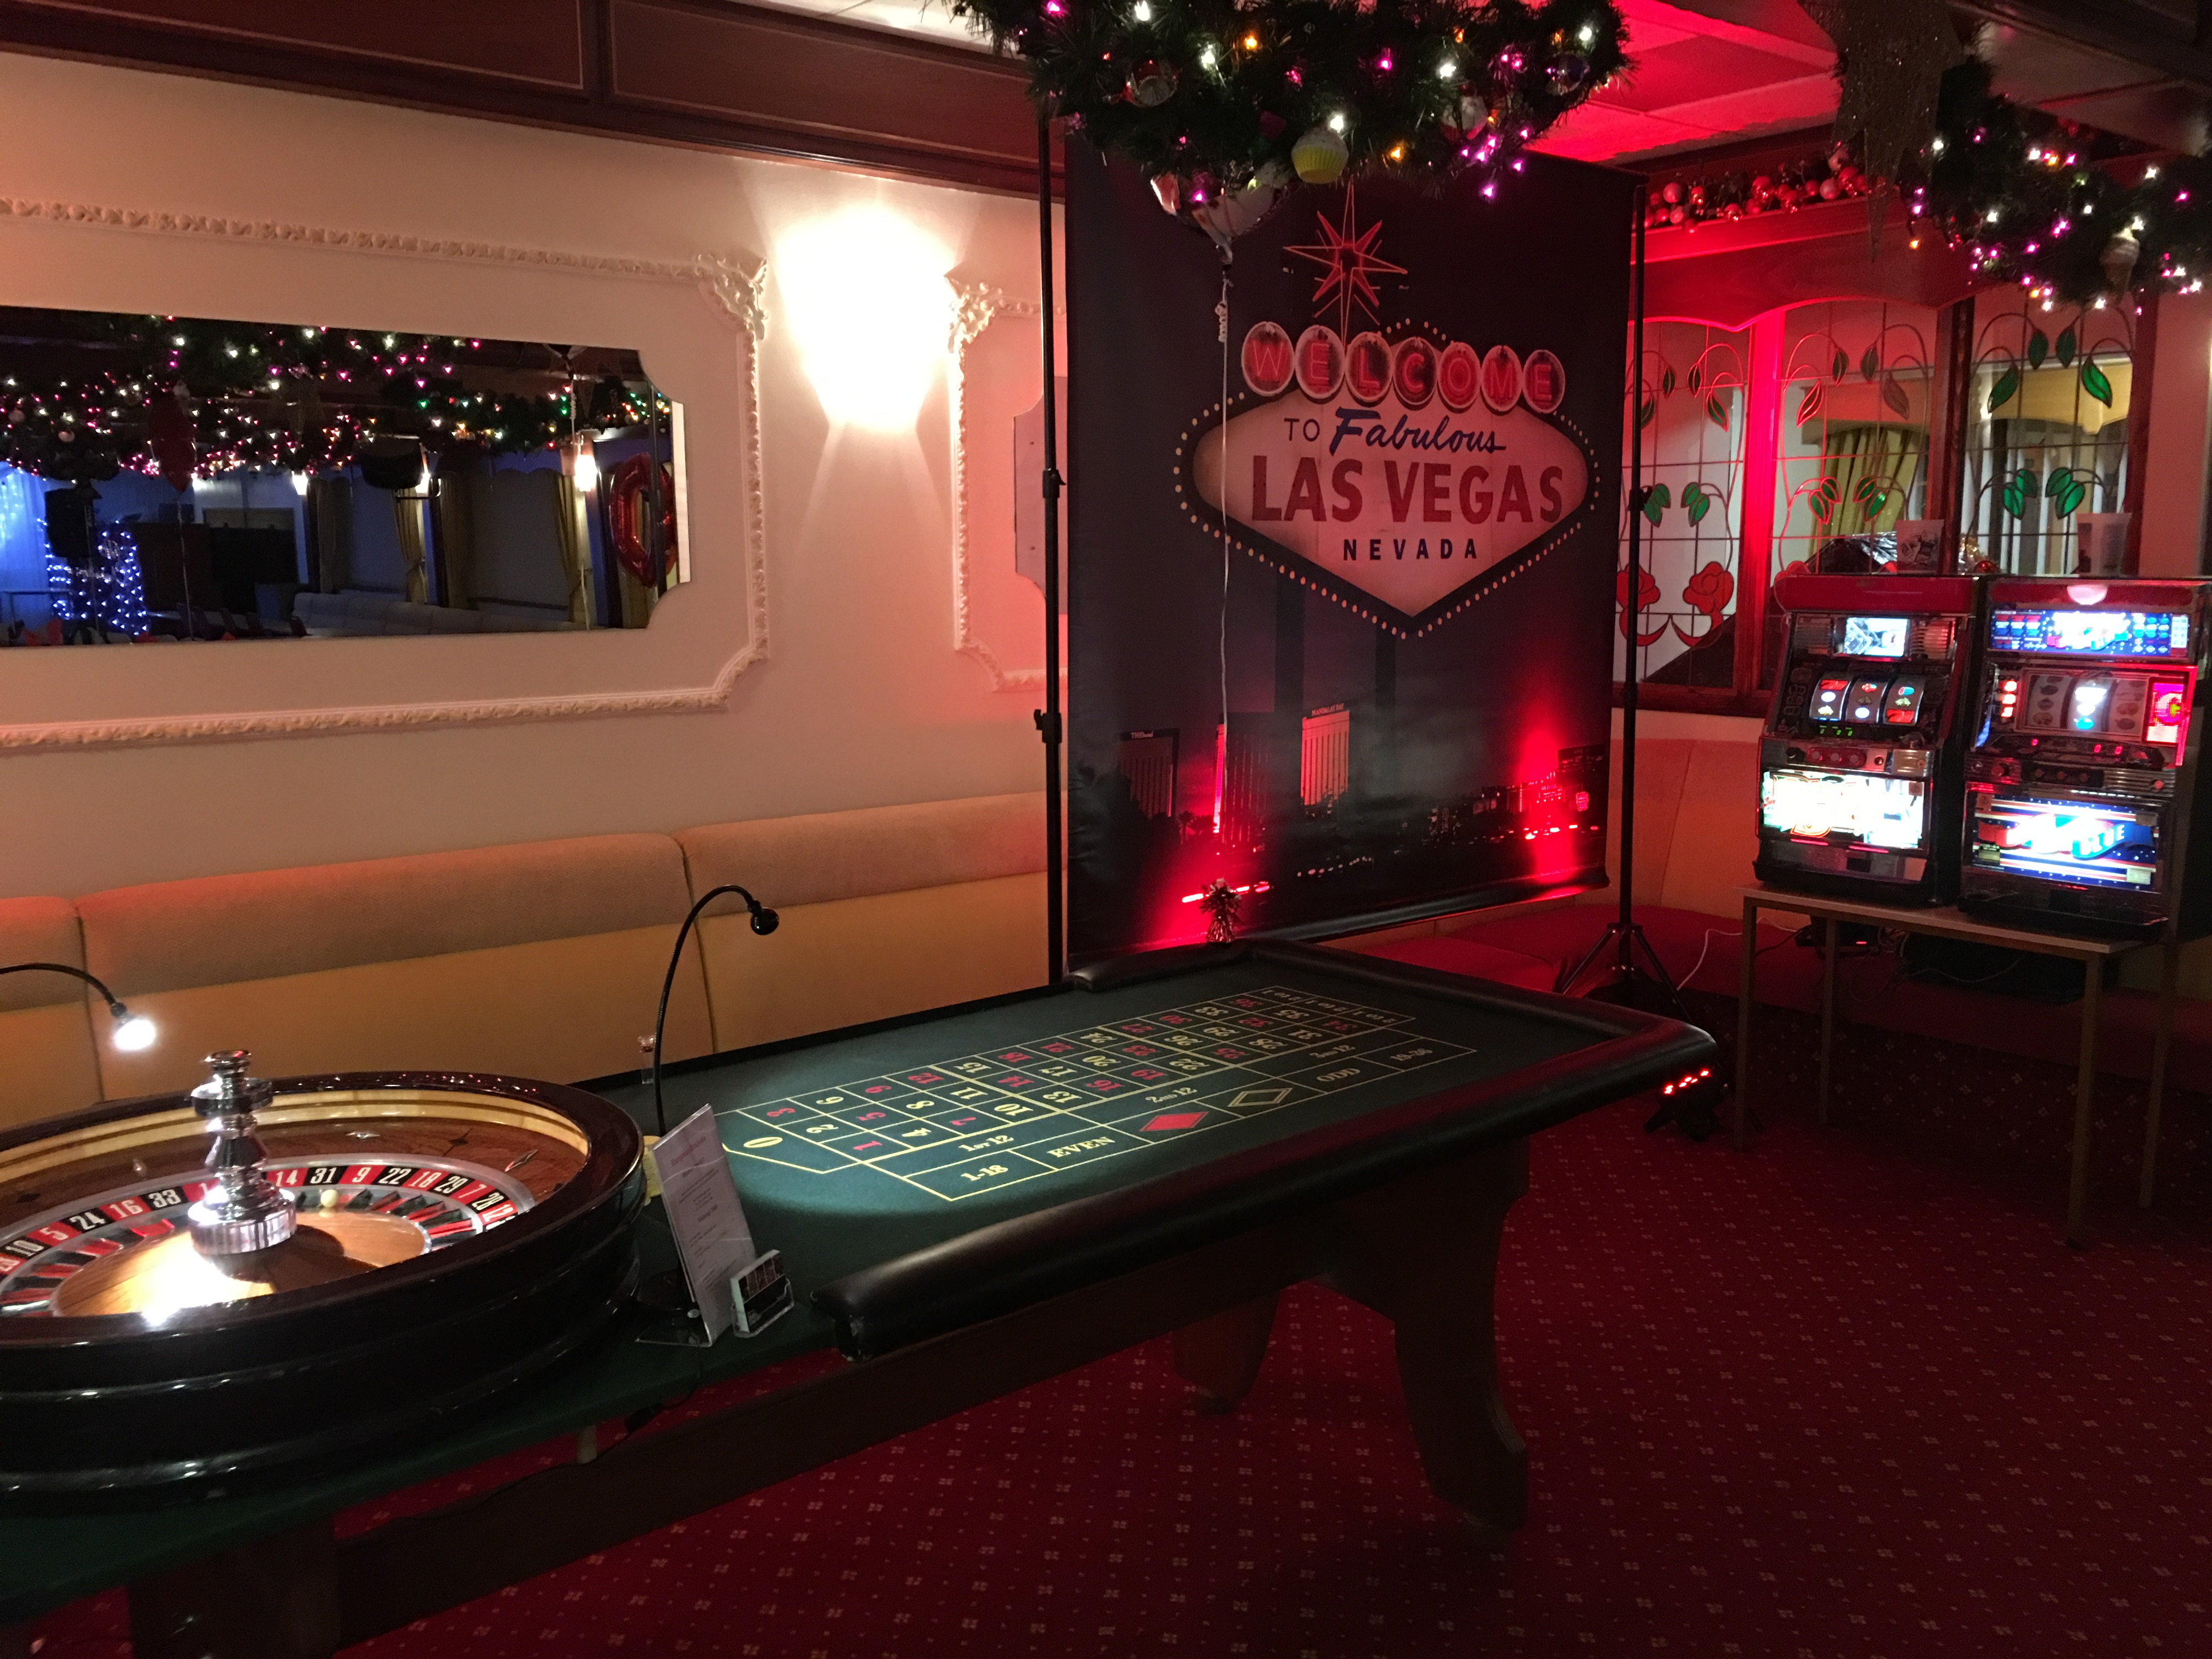 Gala casino cardiff poker schedule empire casino leicester square poker